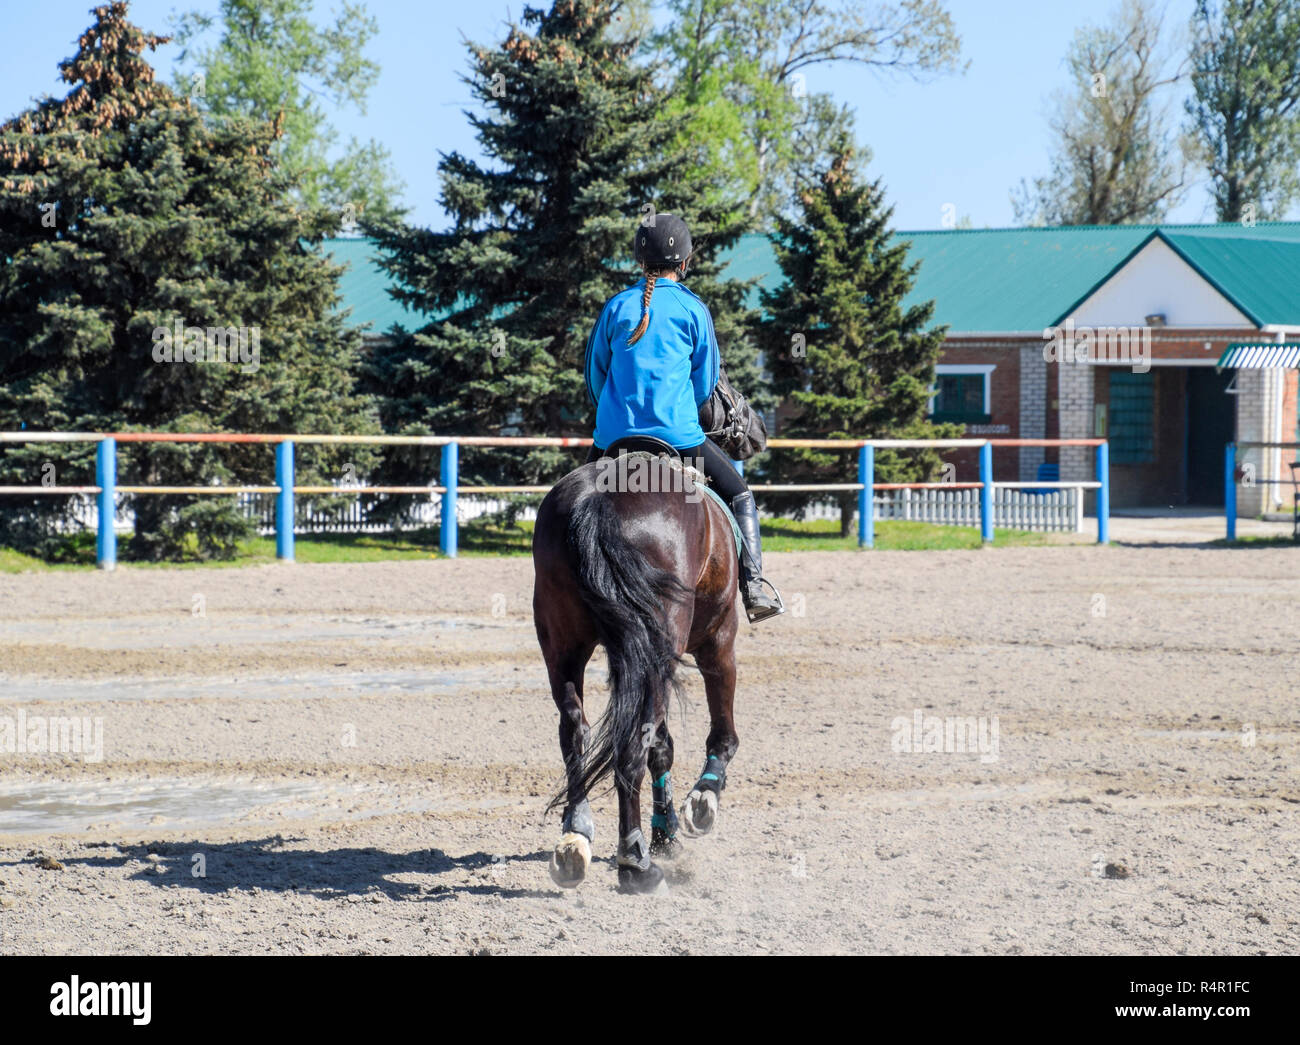 Equestrian sports with teenagers. Horse Club. A girl is riding a horse. - Stock Image